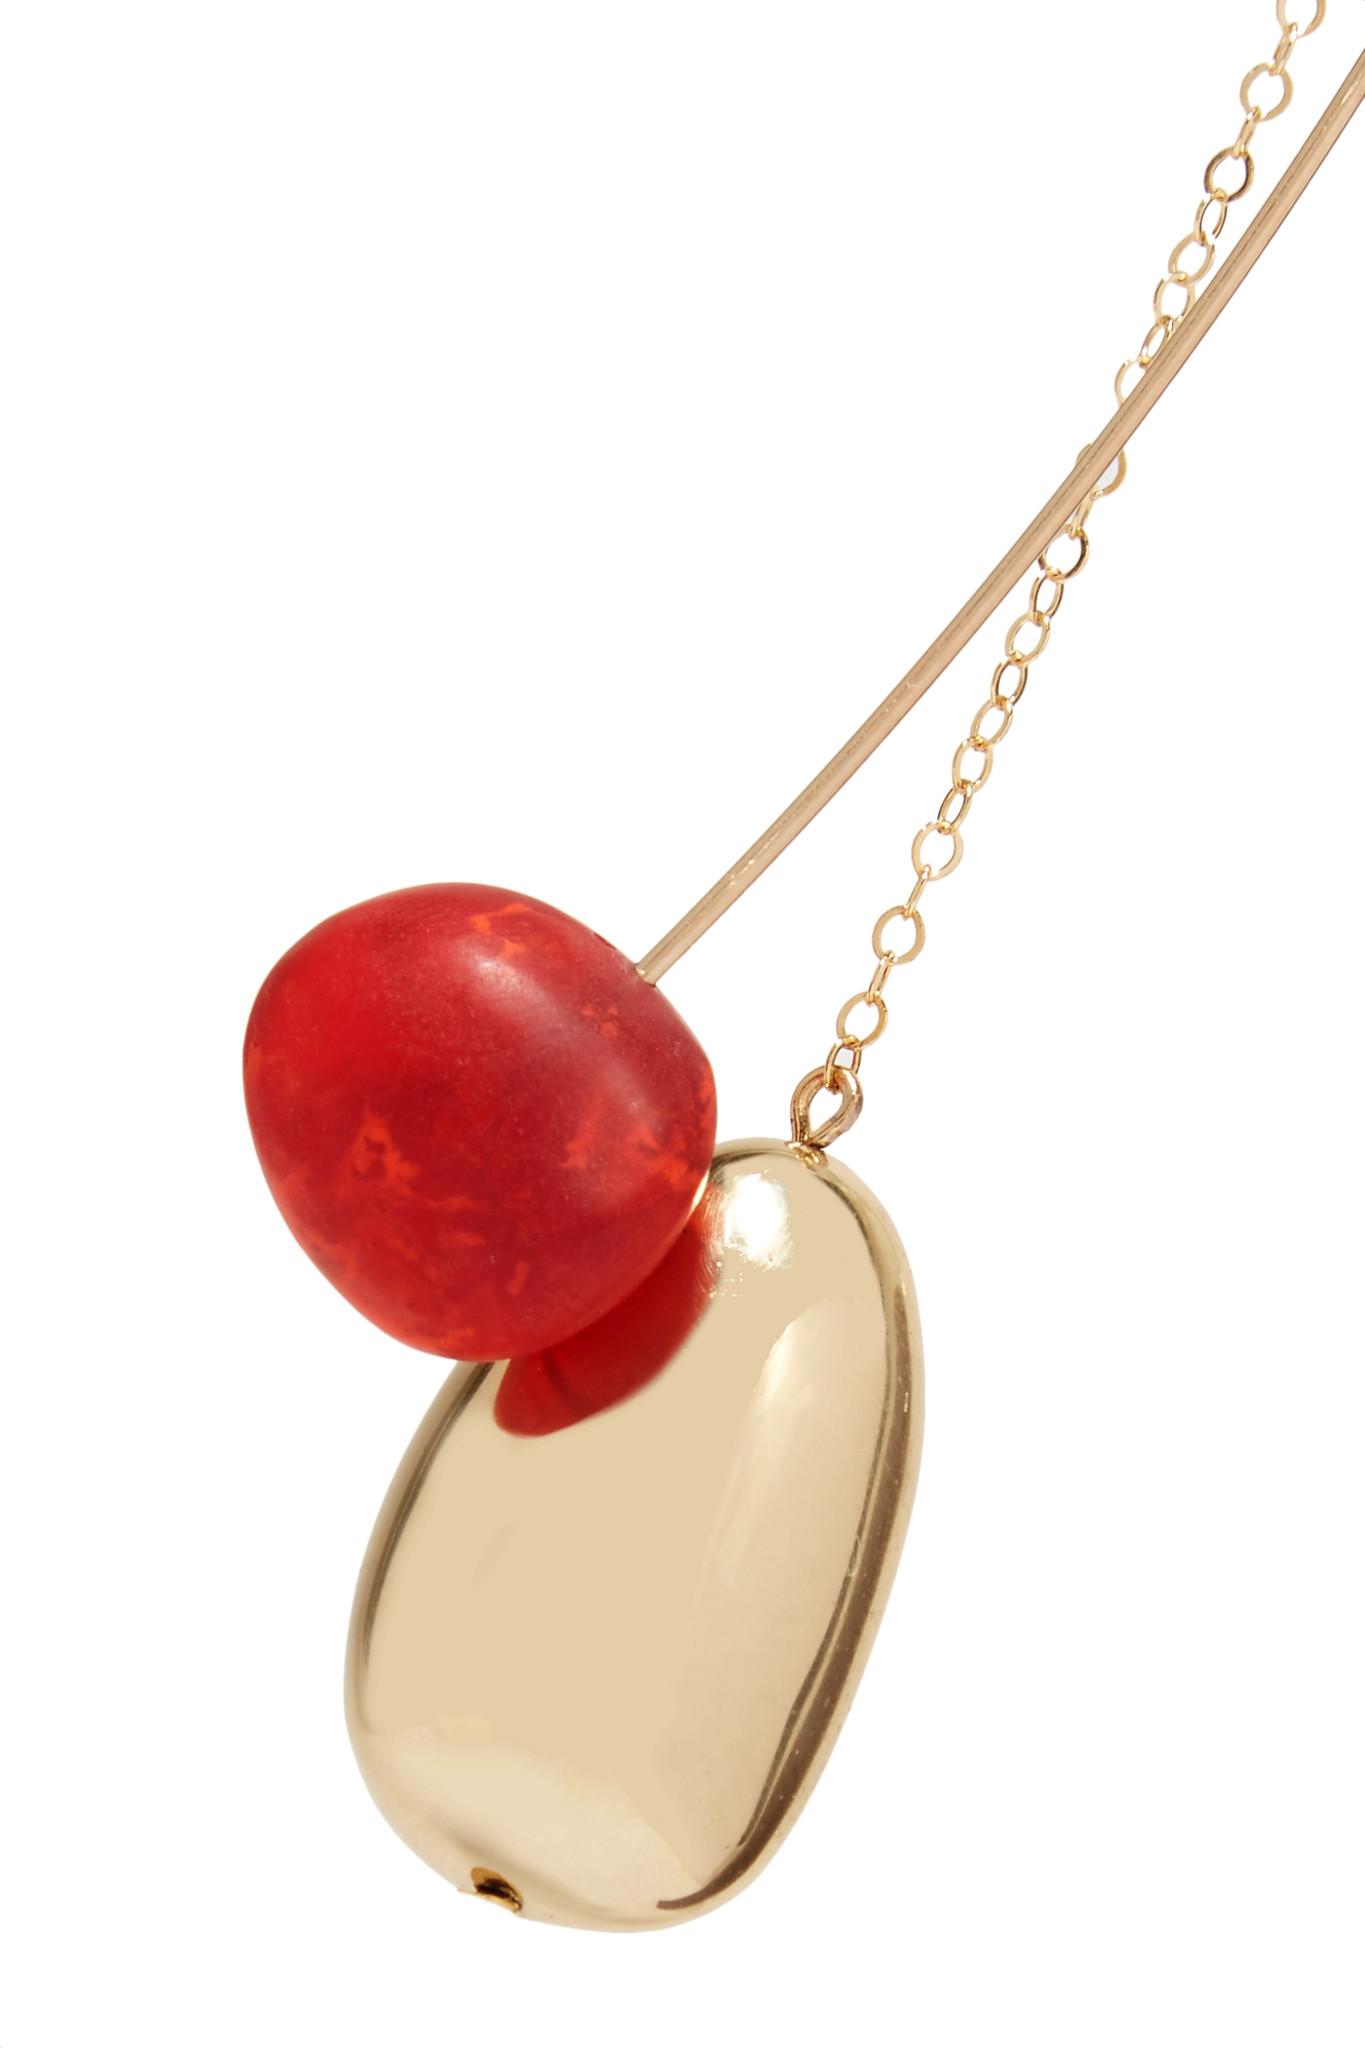 Dinosaur Designs Pebble Gold-tone Resin Necklace - Red O7vcgYC